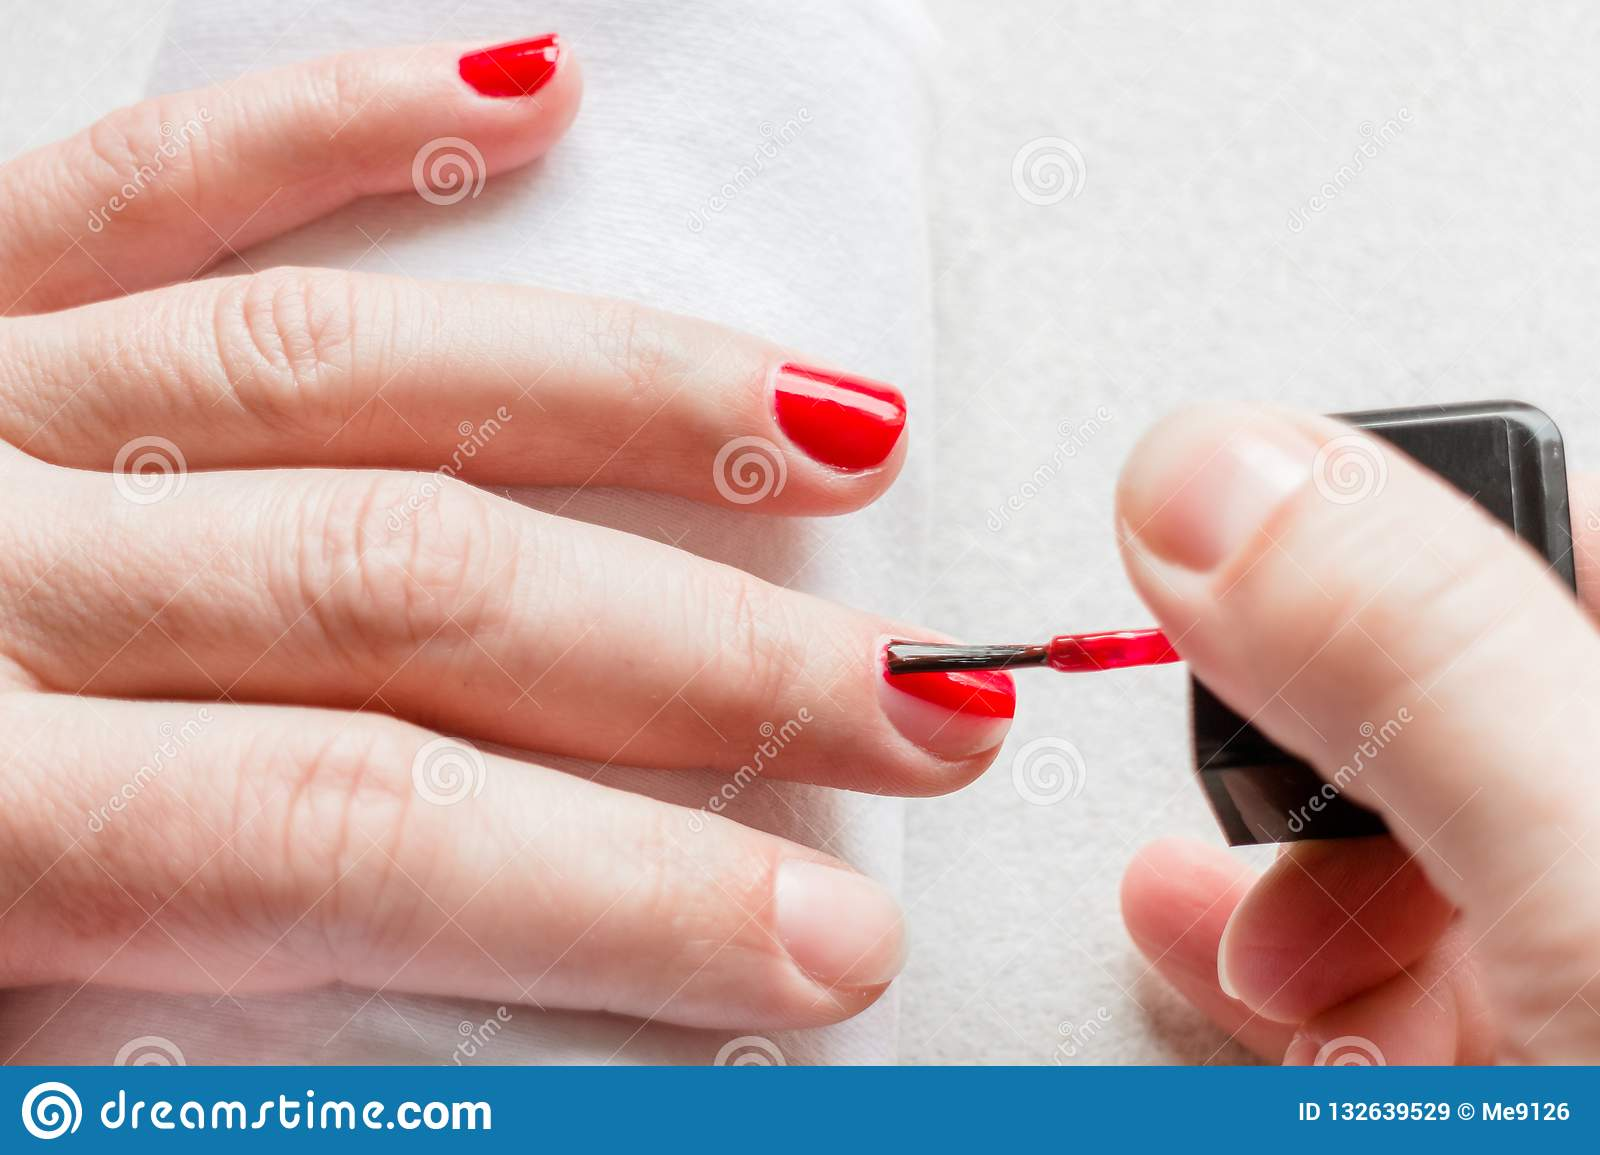 Female Hand Polishing Nails With Red Nail Polish Stock Image - Image ...